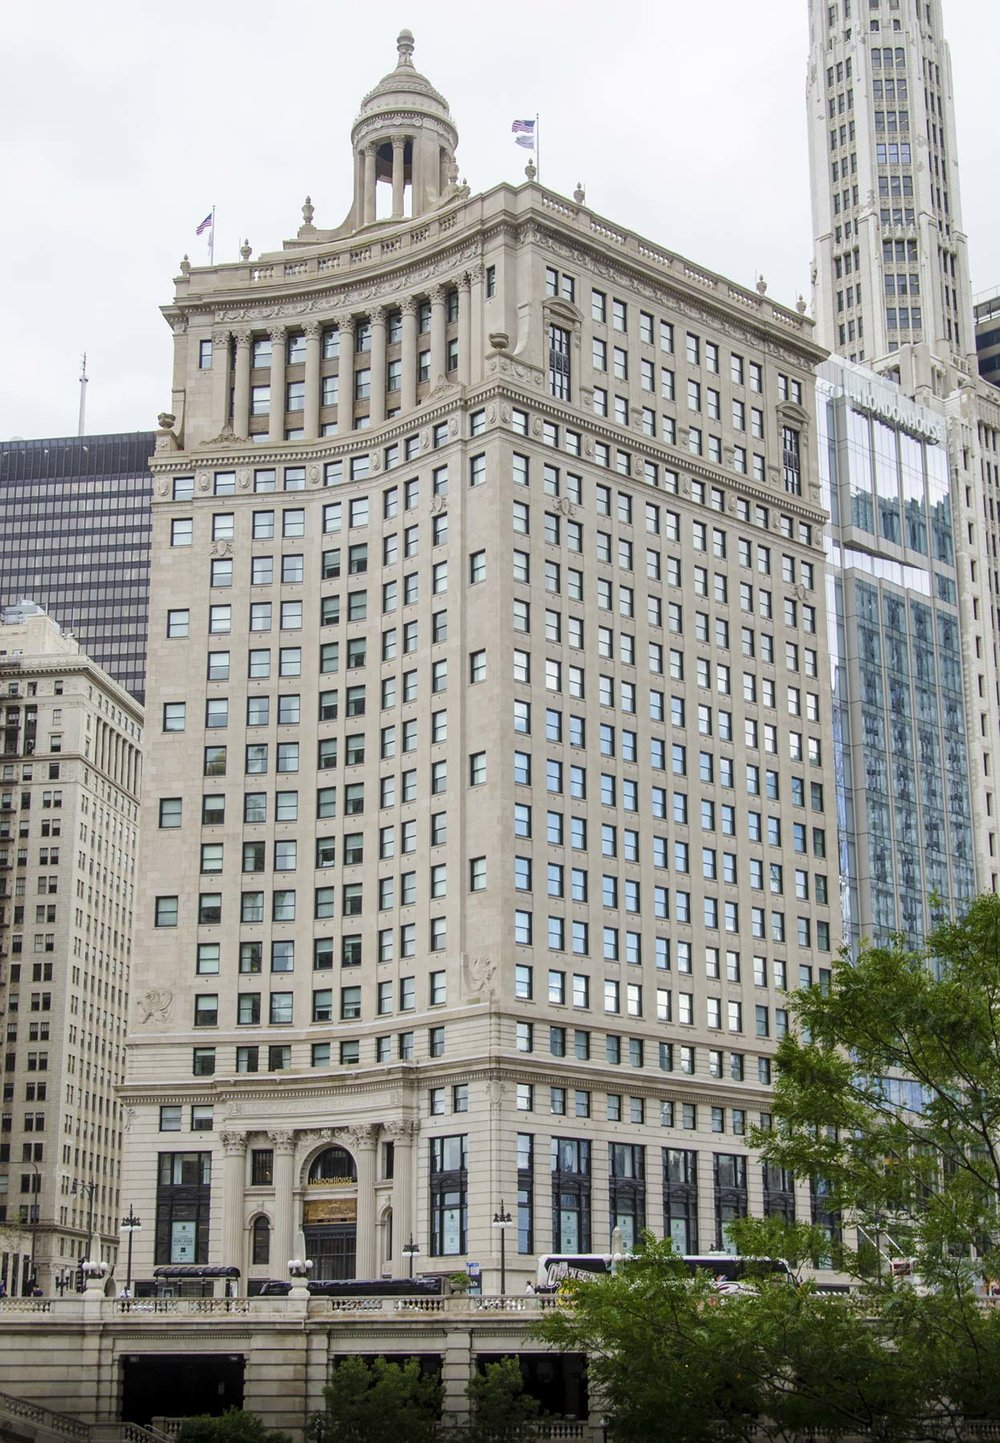 London Guarantee and Accident Building, 85 E. Wacker Drive. Photo by Eric Allix Rogers.